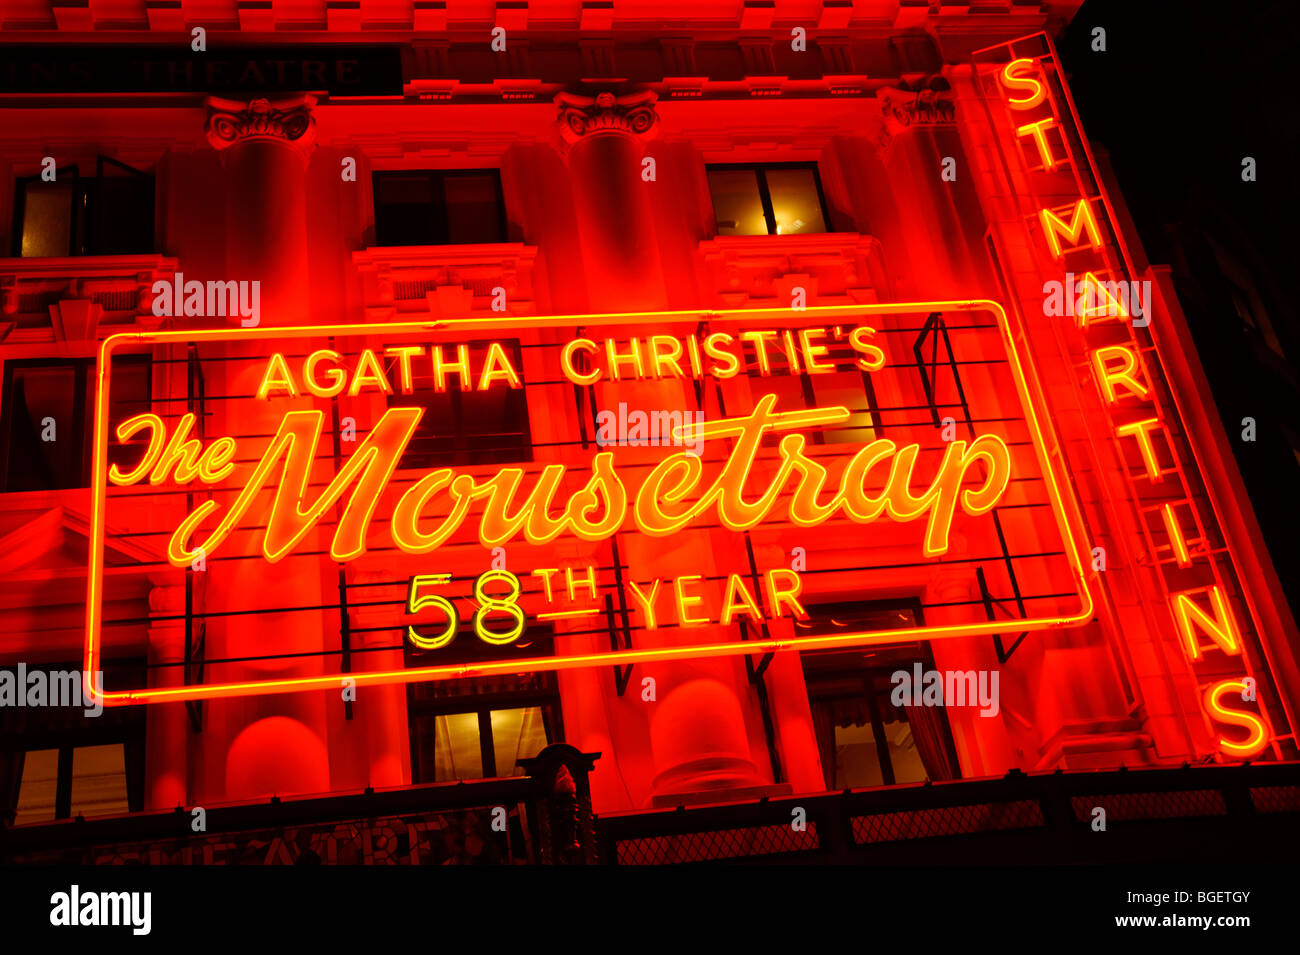 The Mousetrap play. St Martins theatre. London. UK 2009. - Stock Image